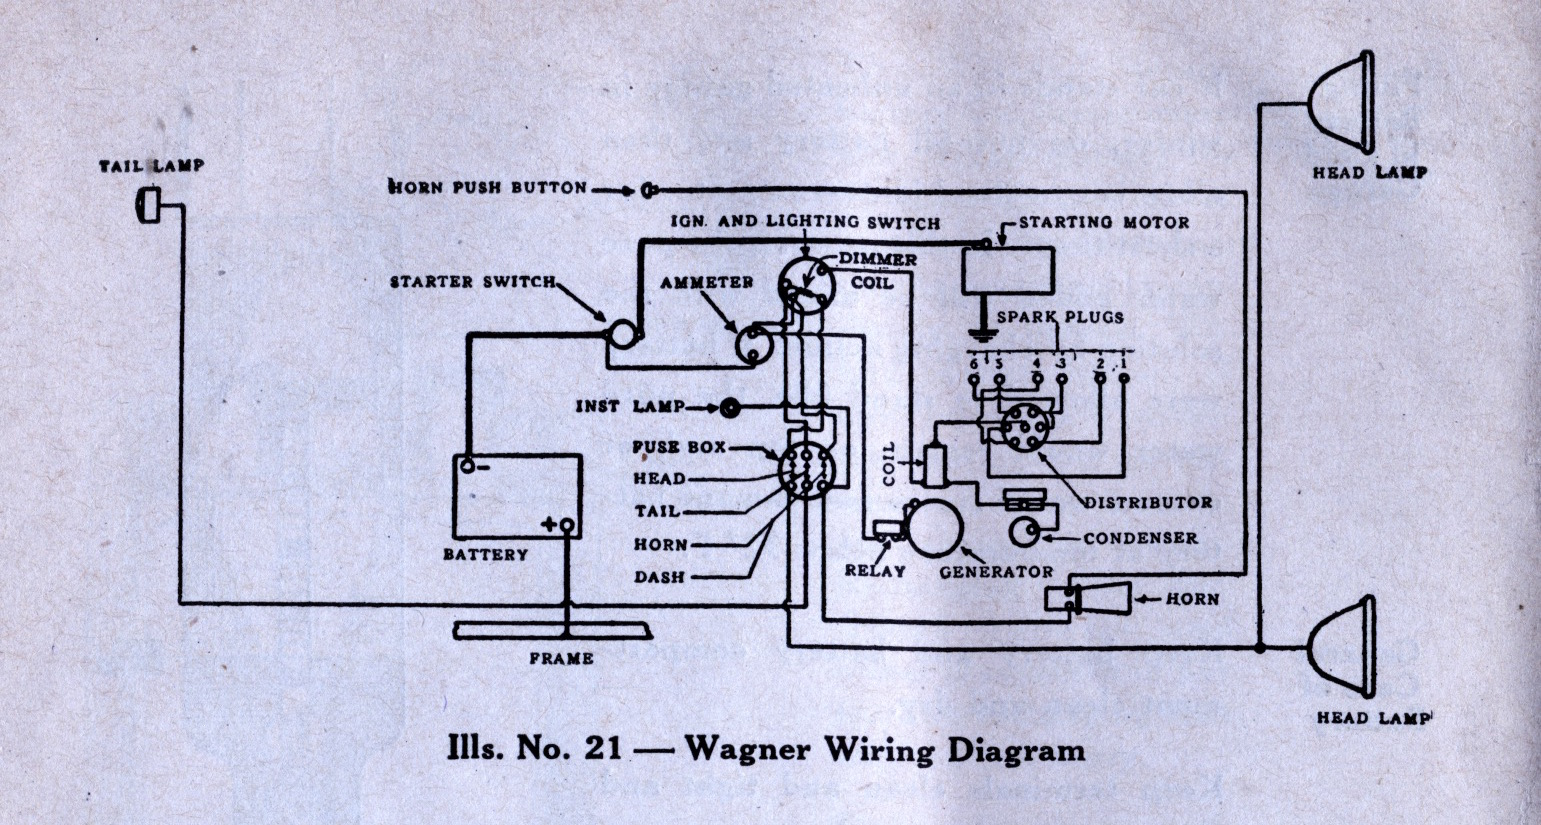 Wagner Wiring Diagrams Library Fasco B45227 Blower Diagram Vintage Wire Studebaker Erskine Rockne Antique Automobile Bj